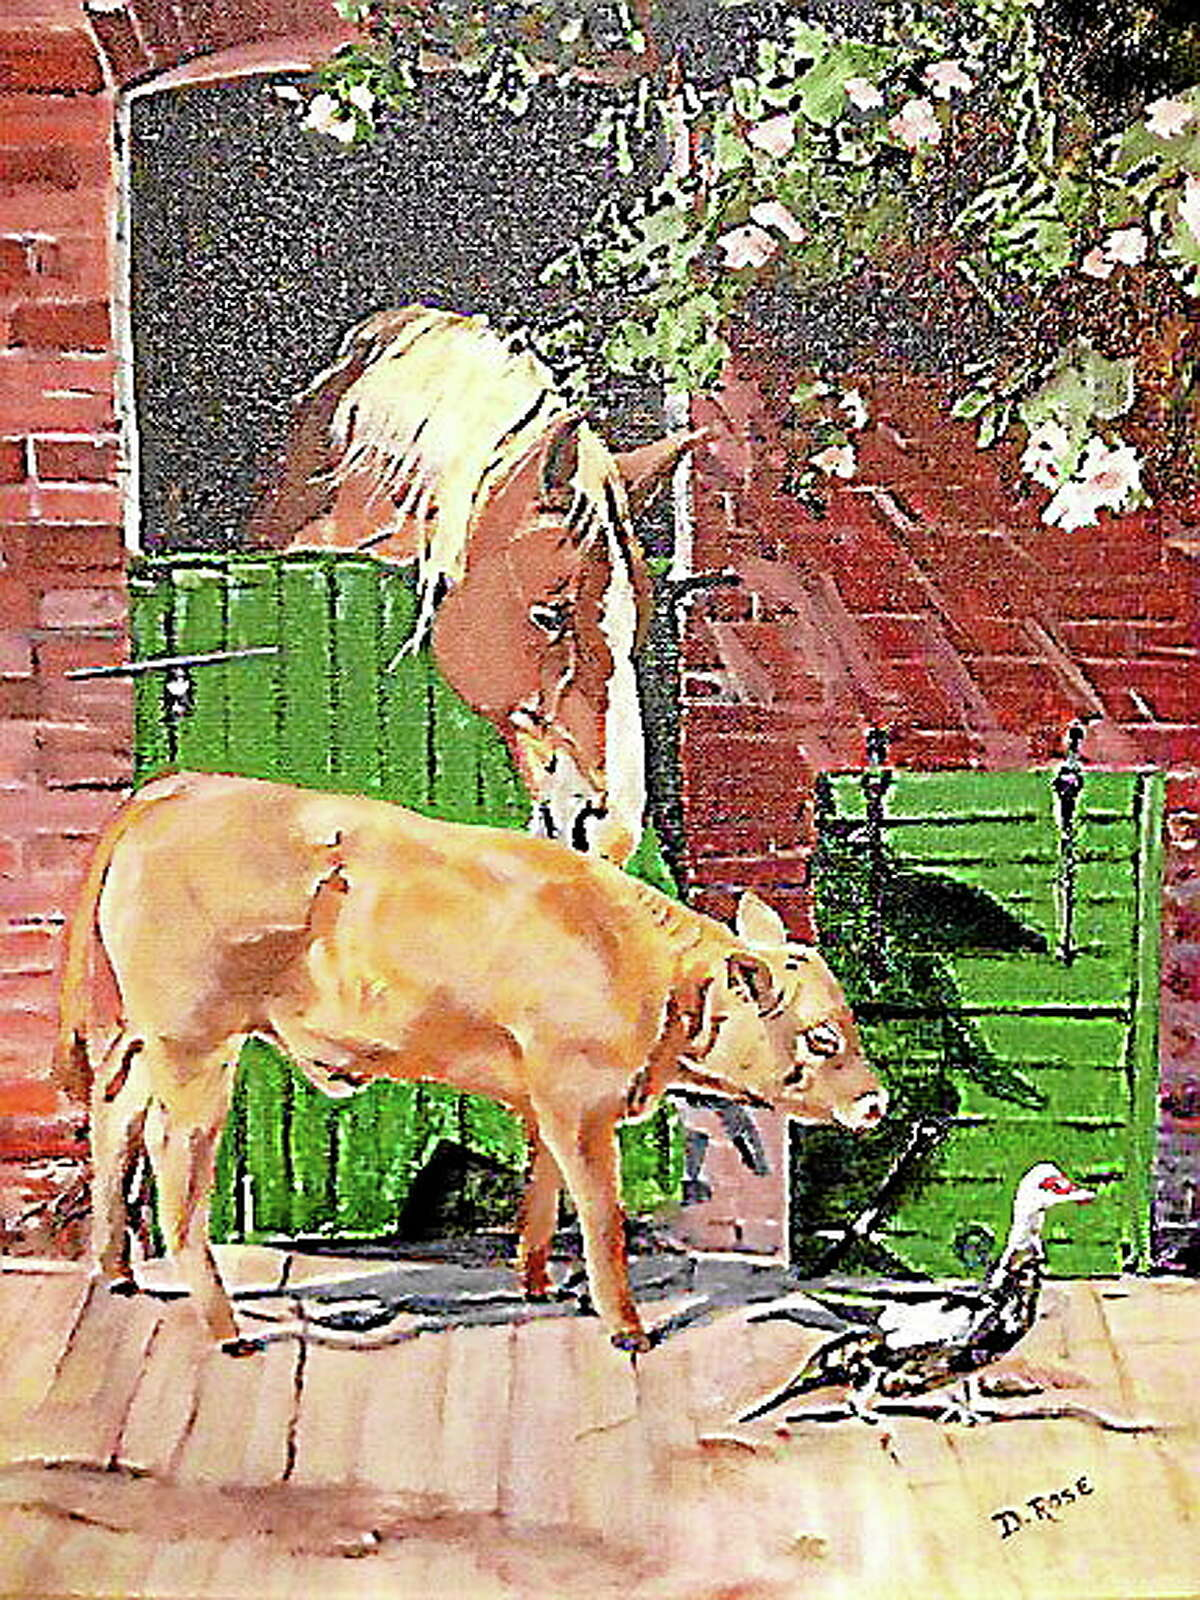 """Image courtesy of the artistDelores Rose's """"Farm Animals"""" from the recent art show."""